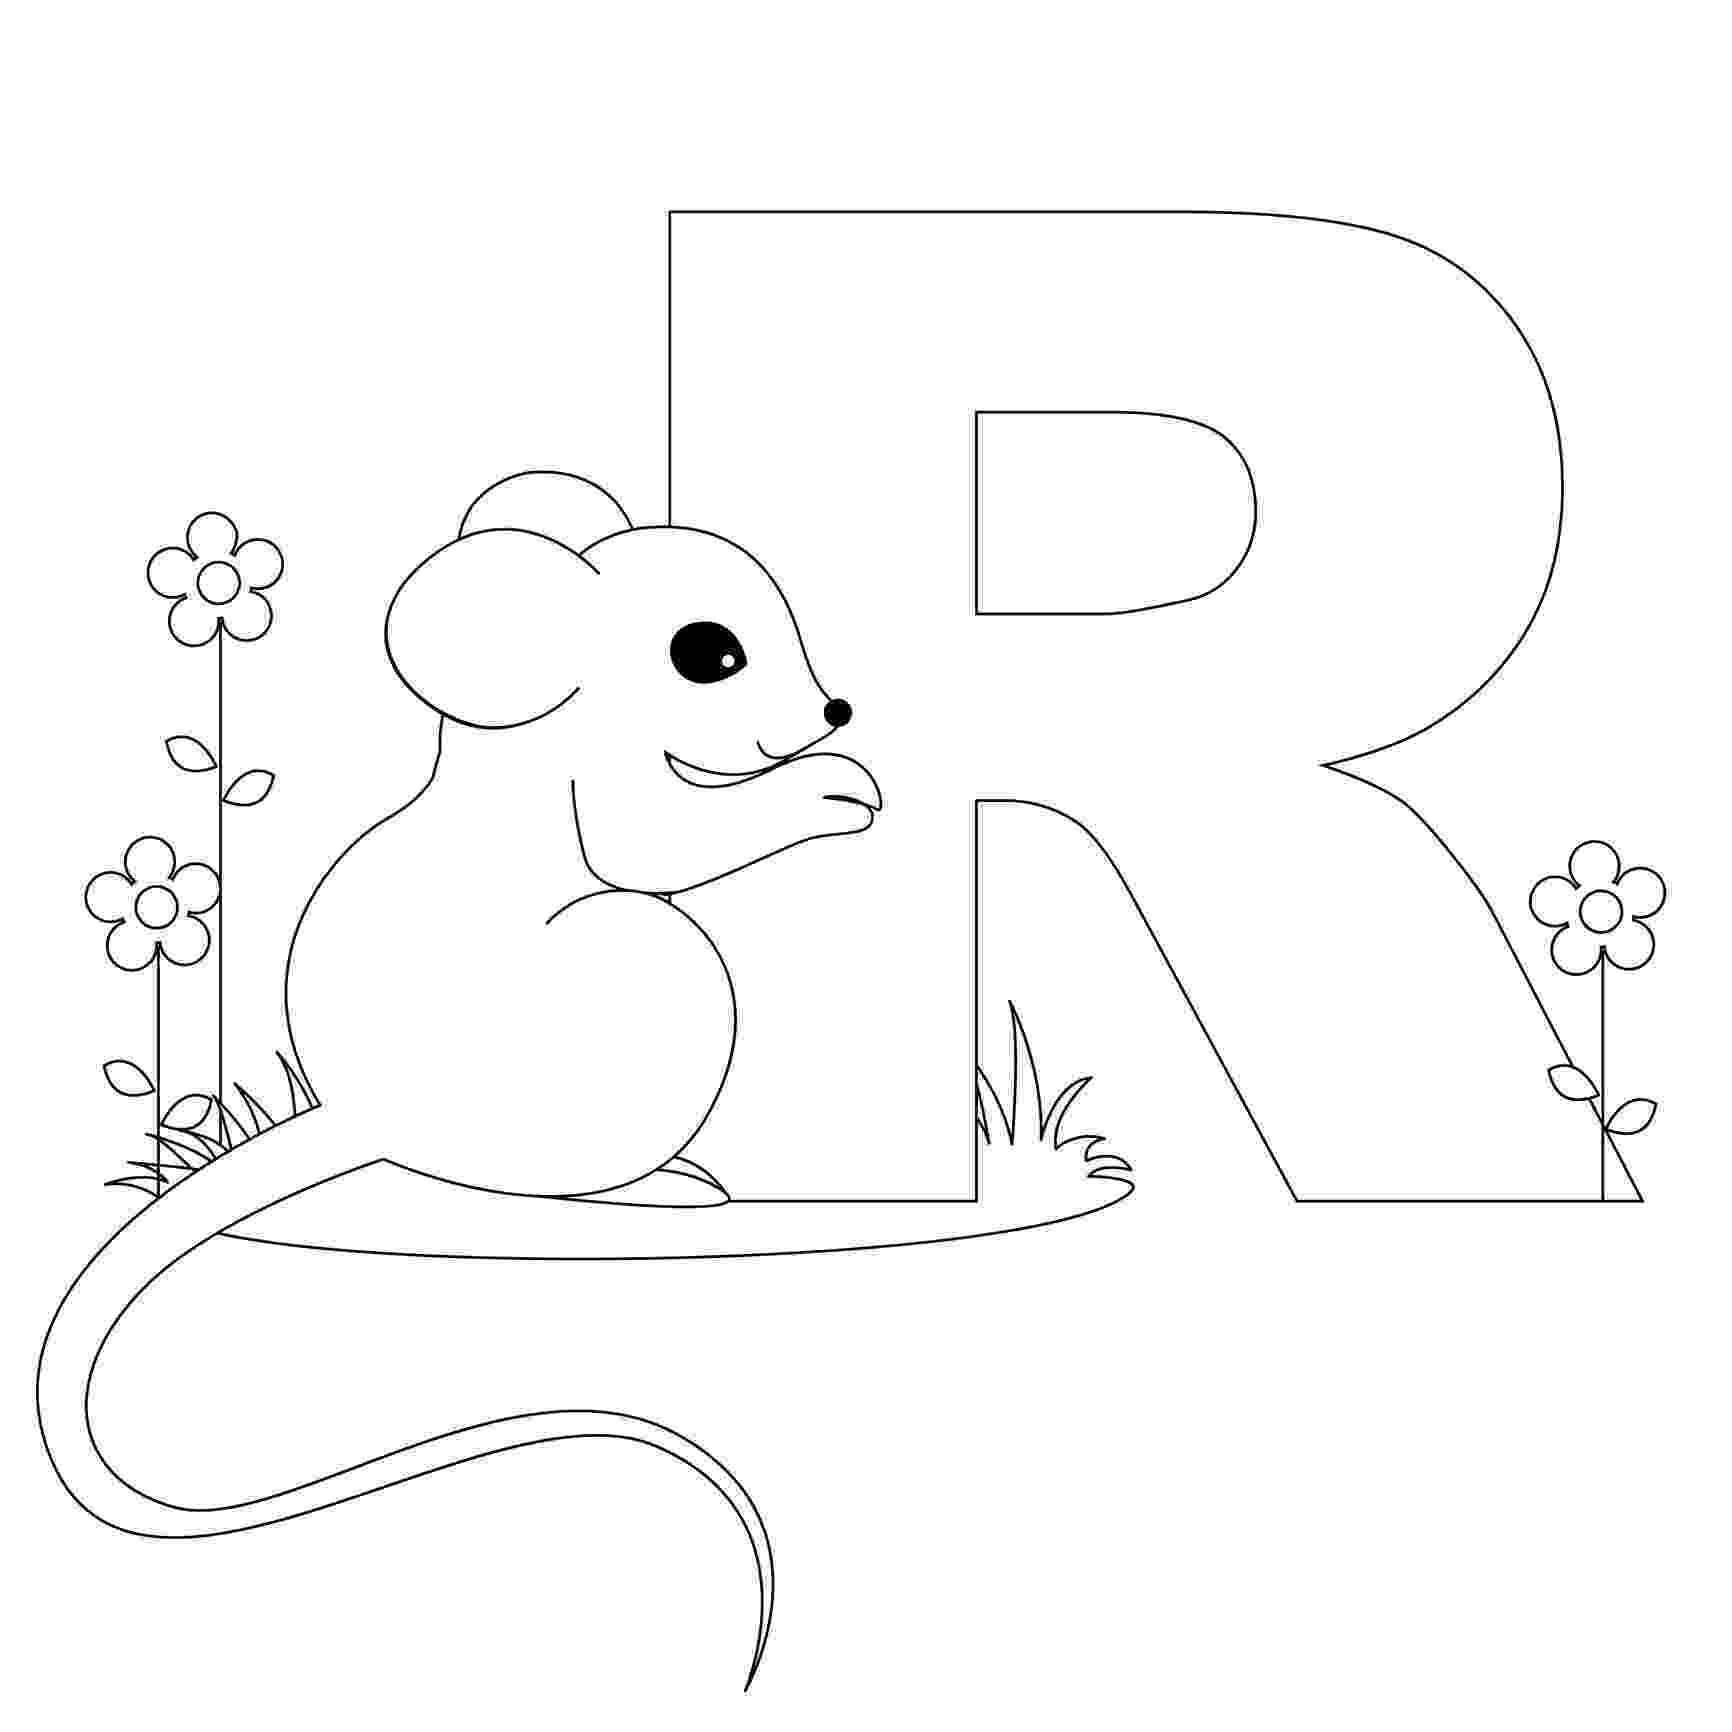 printable coloring alphabet letters free printable alphabet coloring pages for kids best alphabet printable coloring letters